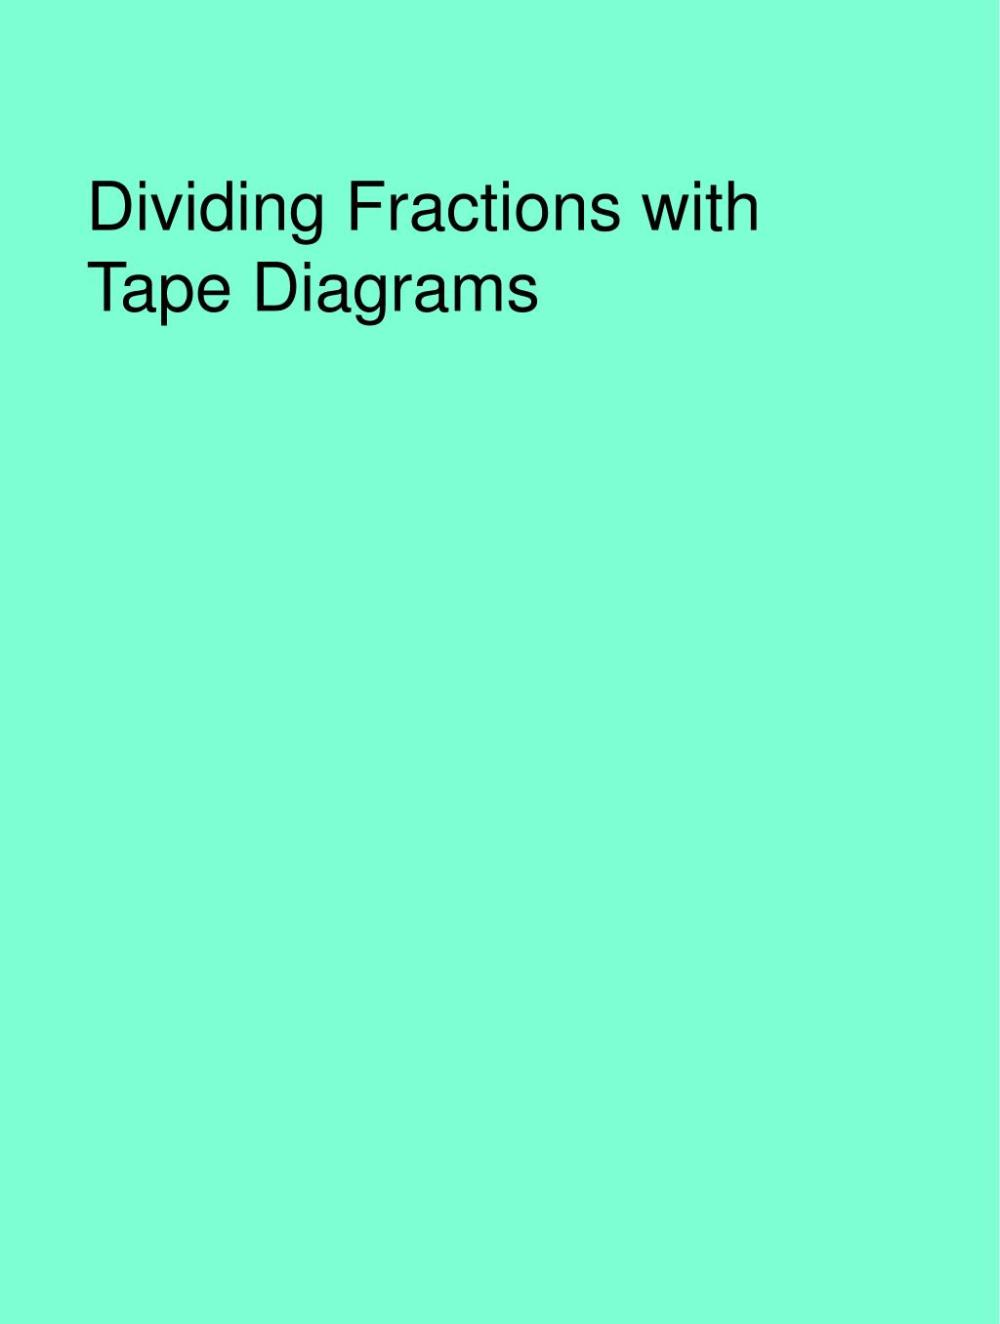 medium resolution of dividing fractions with tape diagrams